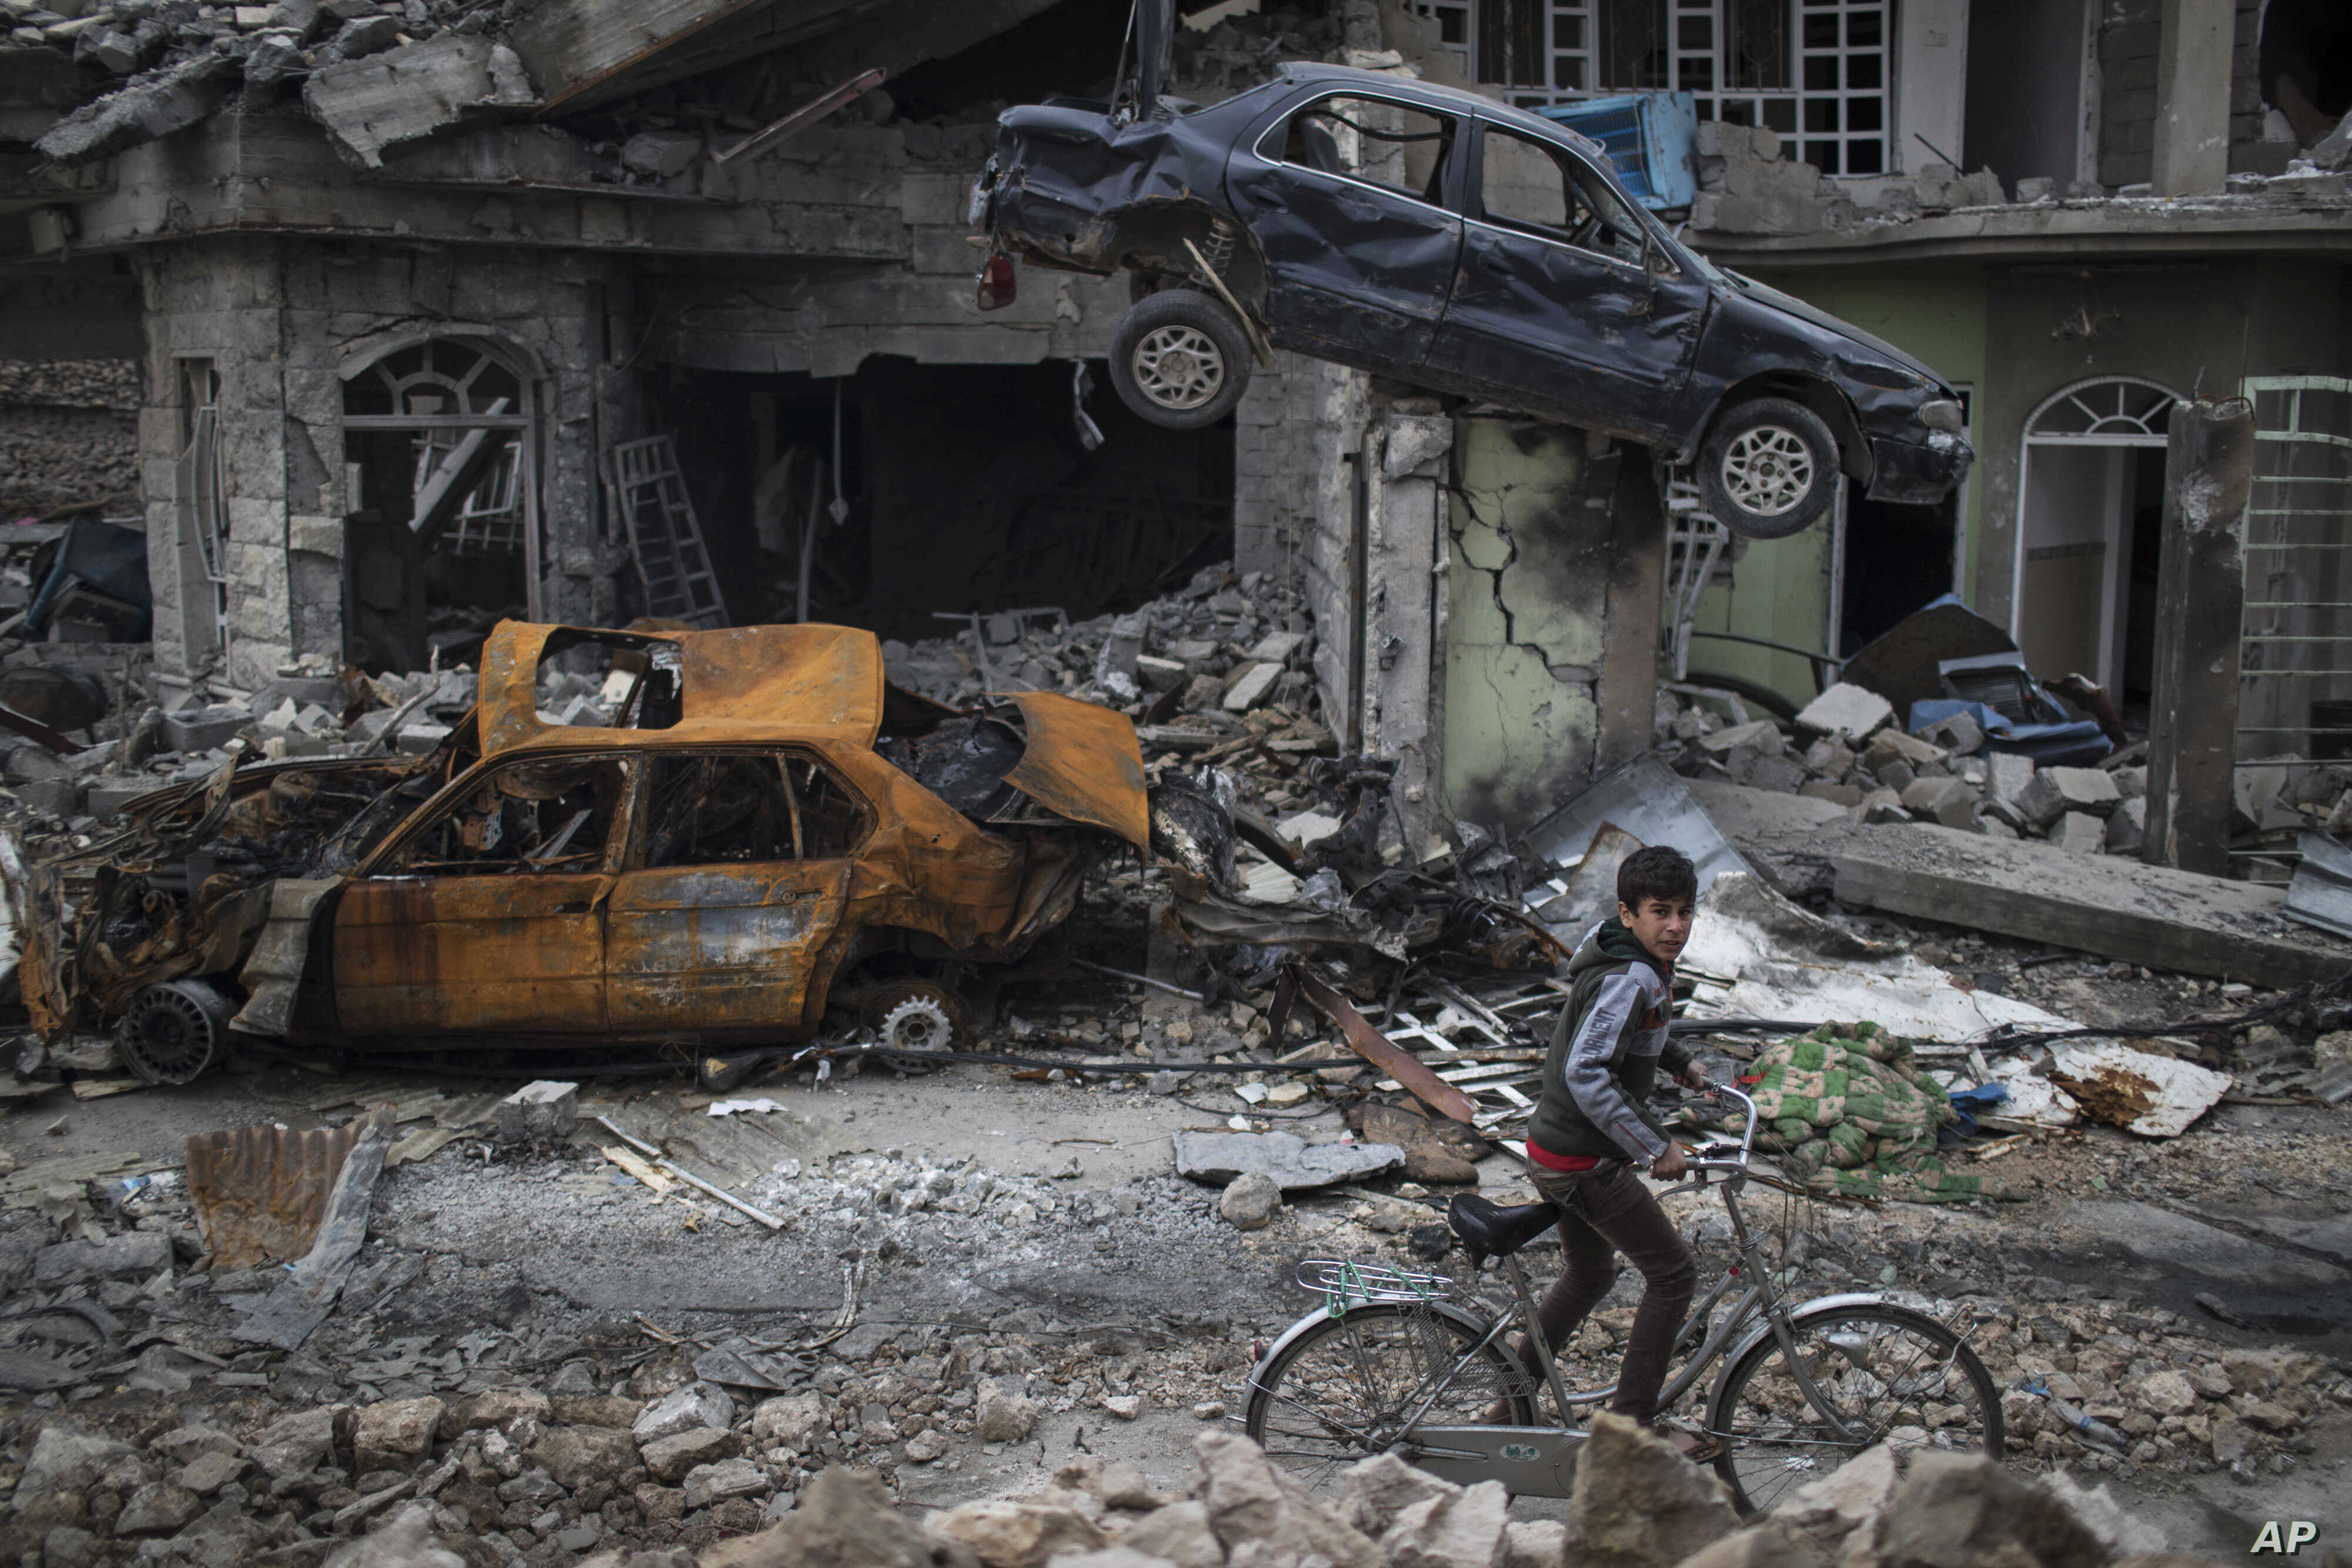 A boy rides his bike past destroyed cars and houses in a neighborhood recently liberated by Iraqi security forces, on the western side of Mosul, Iraq, Sunday, March 19, 2017.